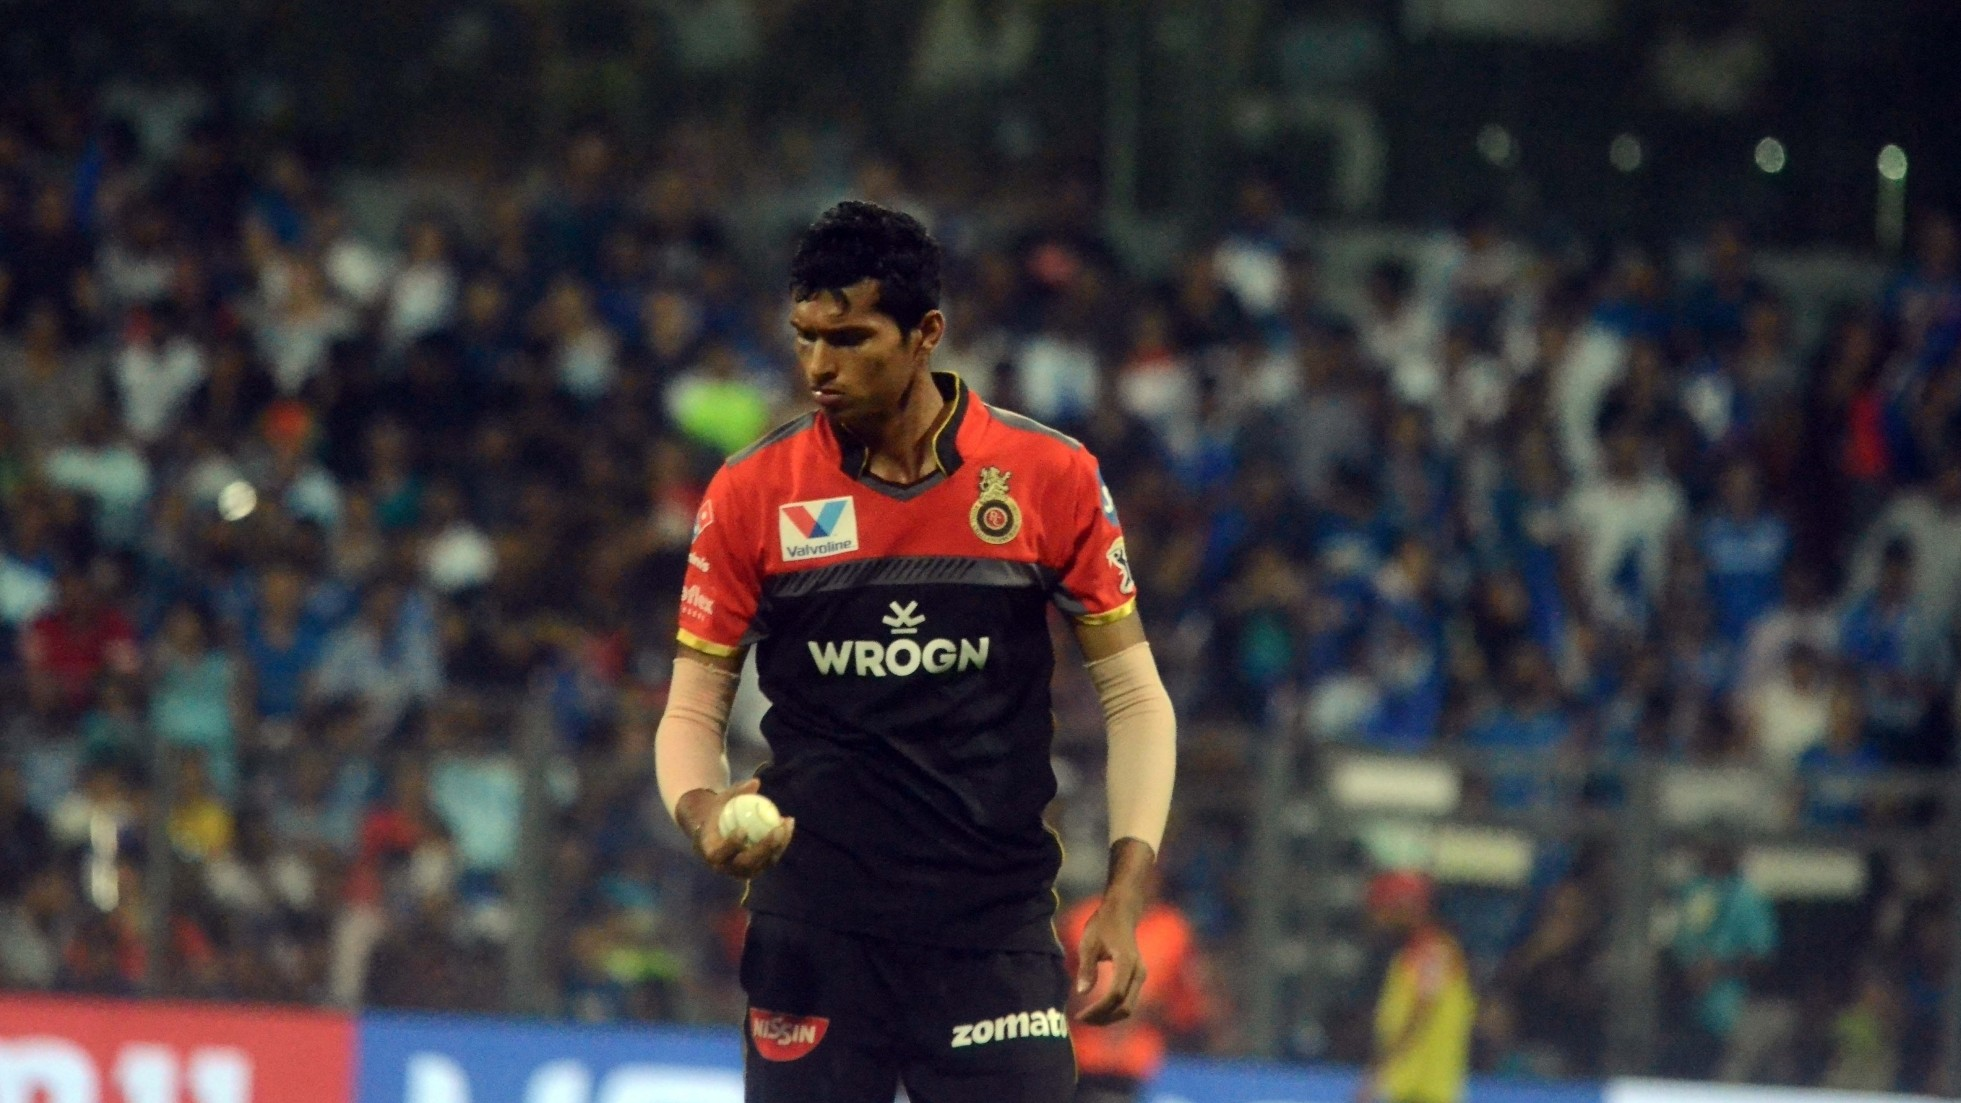 IPL 2019: 3 uncapped IPL players who could debut for India in 2019